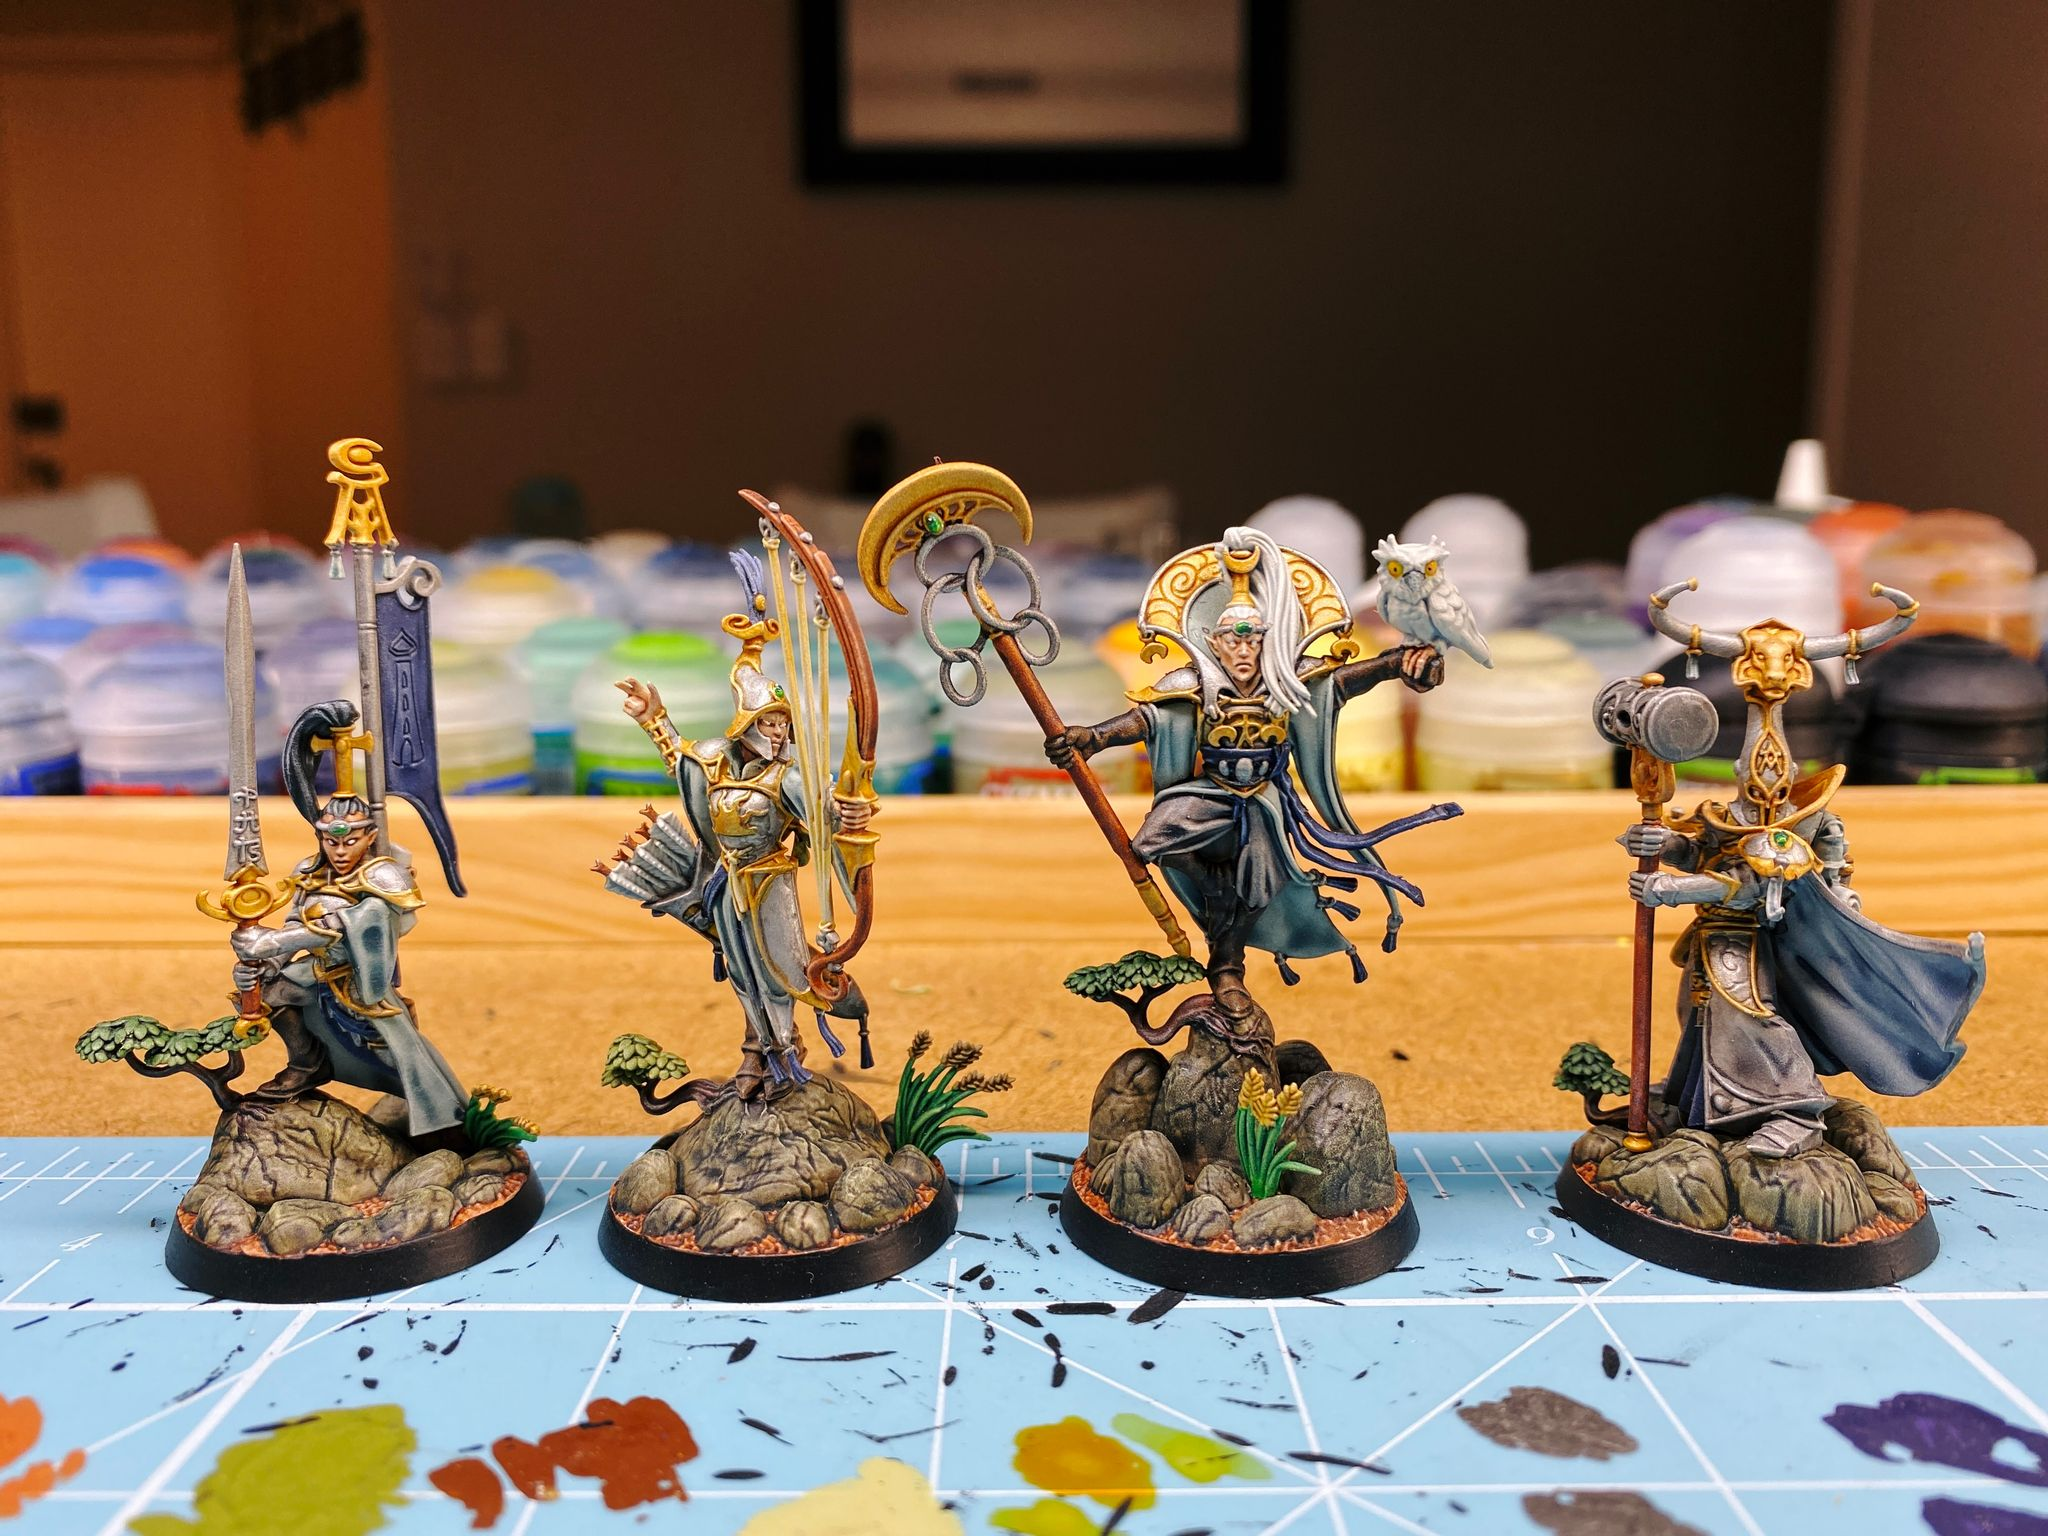 A photo of four fully-painted miniatures, the elves from the Warhammer Underworlds: Direchasm core set. They have elegant silver armour with gold trim and pale green/blue robes. One has a sword, another has a hammer, a third has a bow, and the leader has a staff in one hand and a white owl with yellow eyes sitting on his other hand.